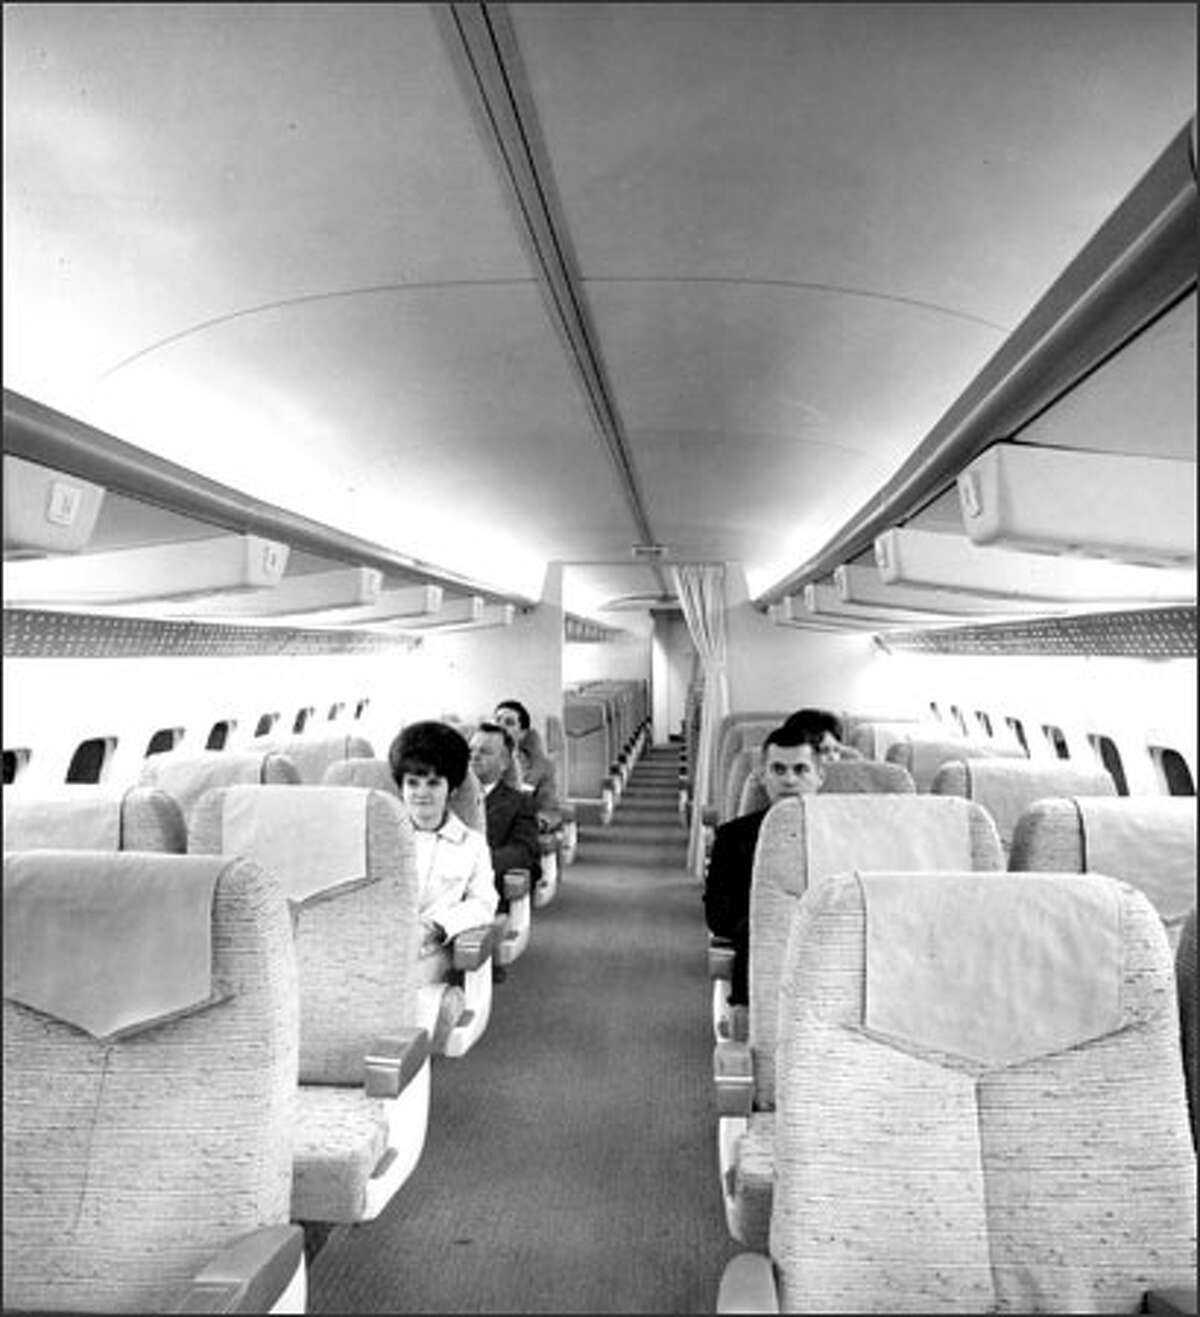 Boeing employees sit in the first-class section of a sales mockup of the 737 jetliner, about a year before the 737's maiden flight.